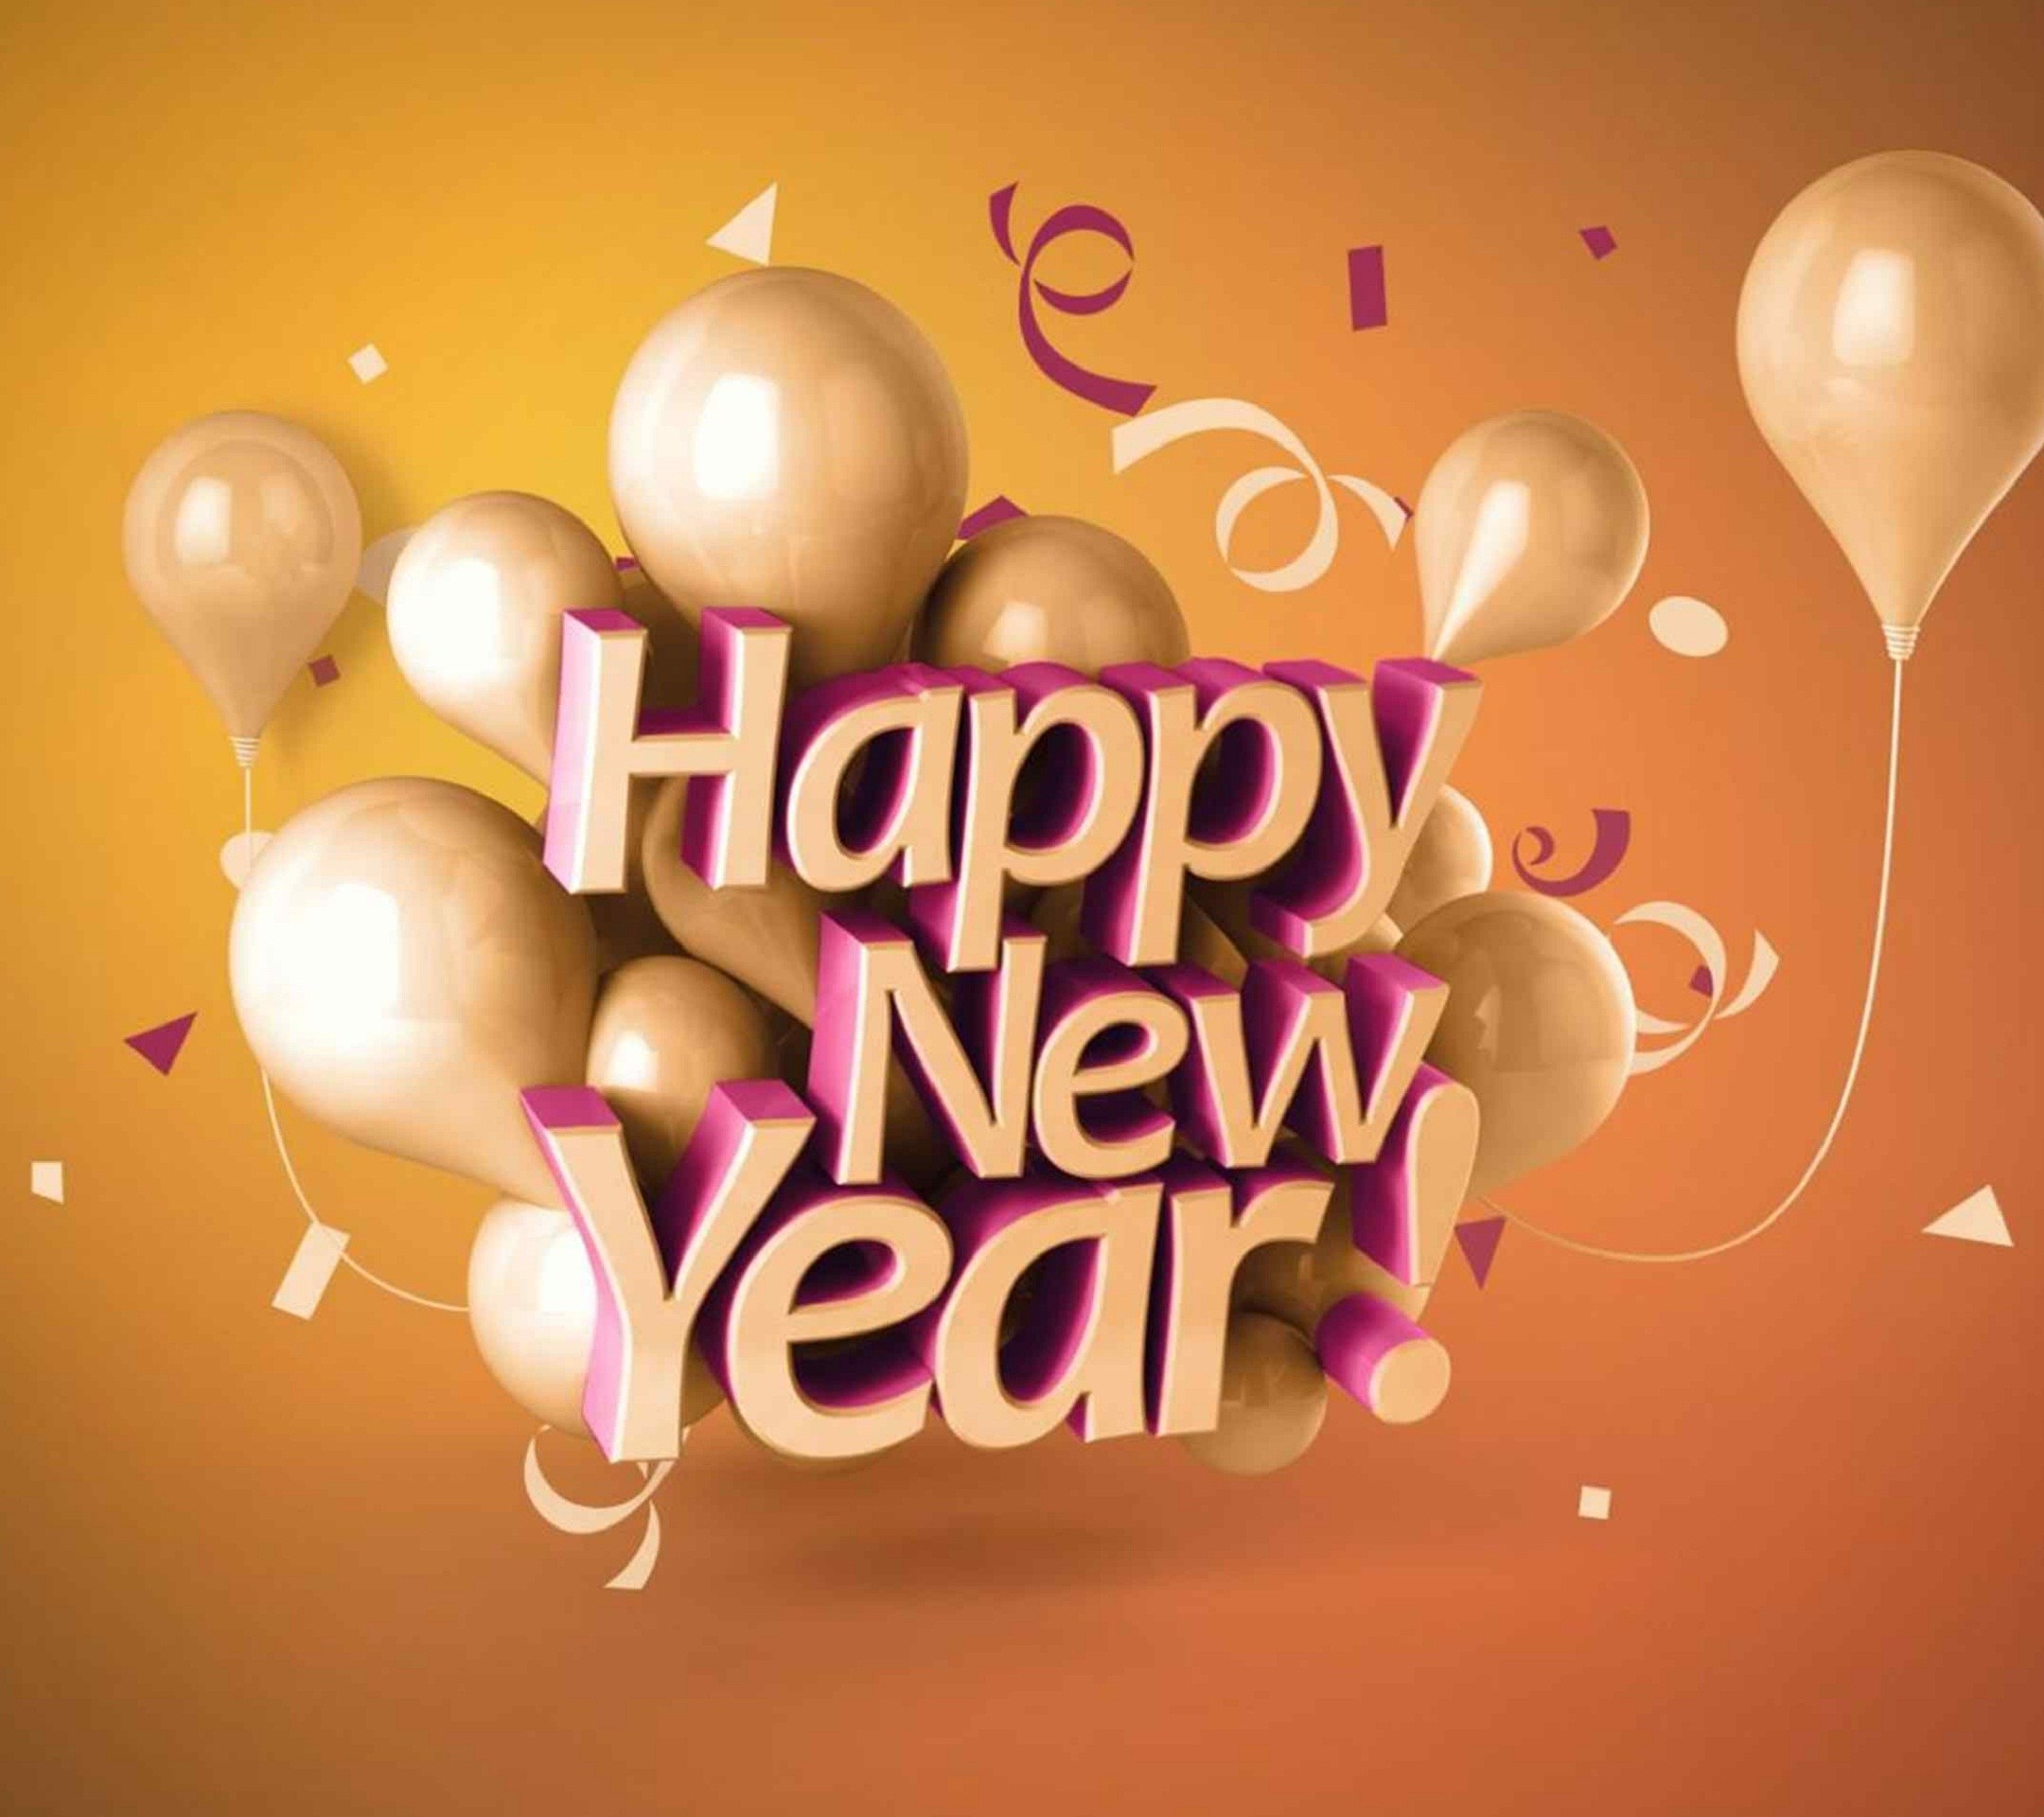 Happy new year christian clipart 6 » Clipart Portal.